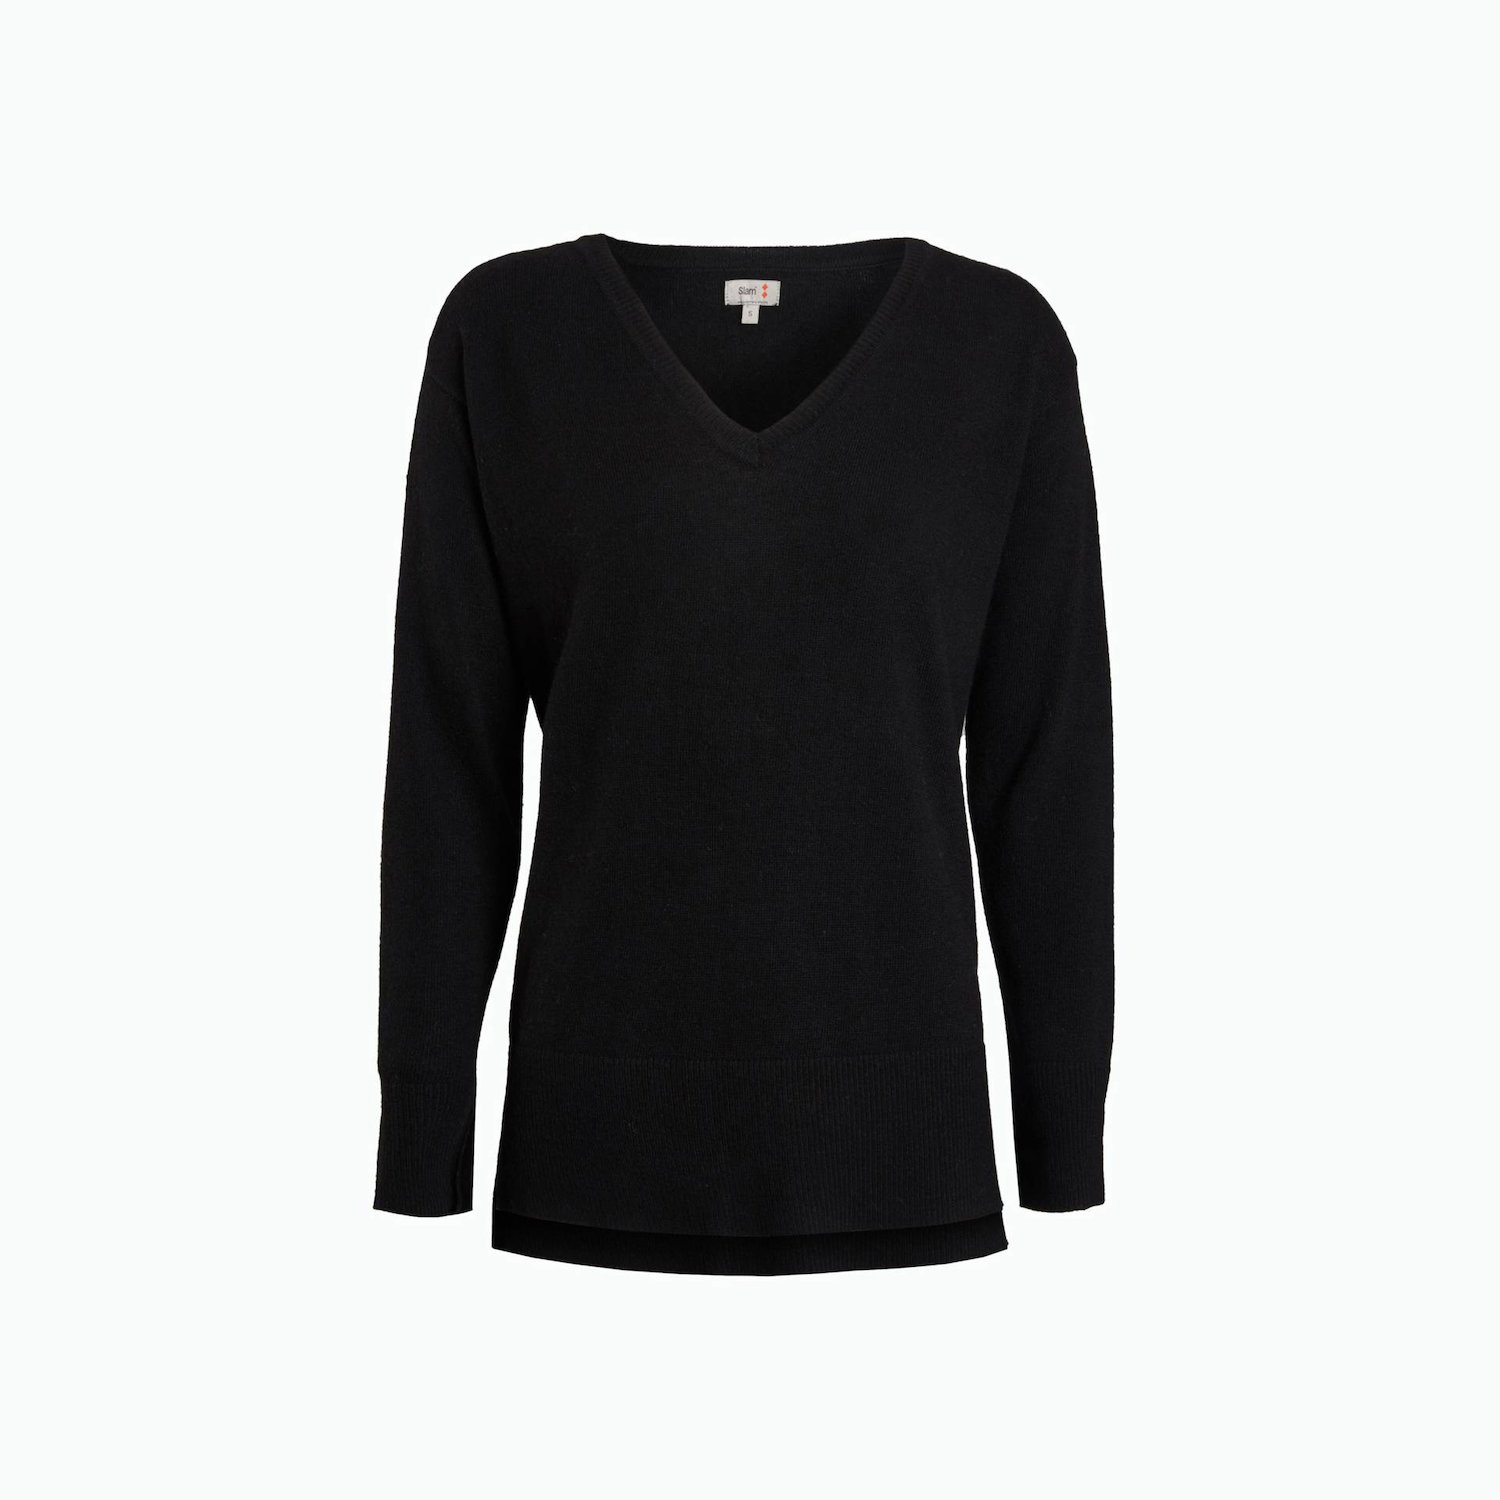 B96 Jumper - Black